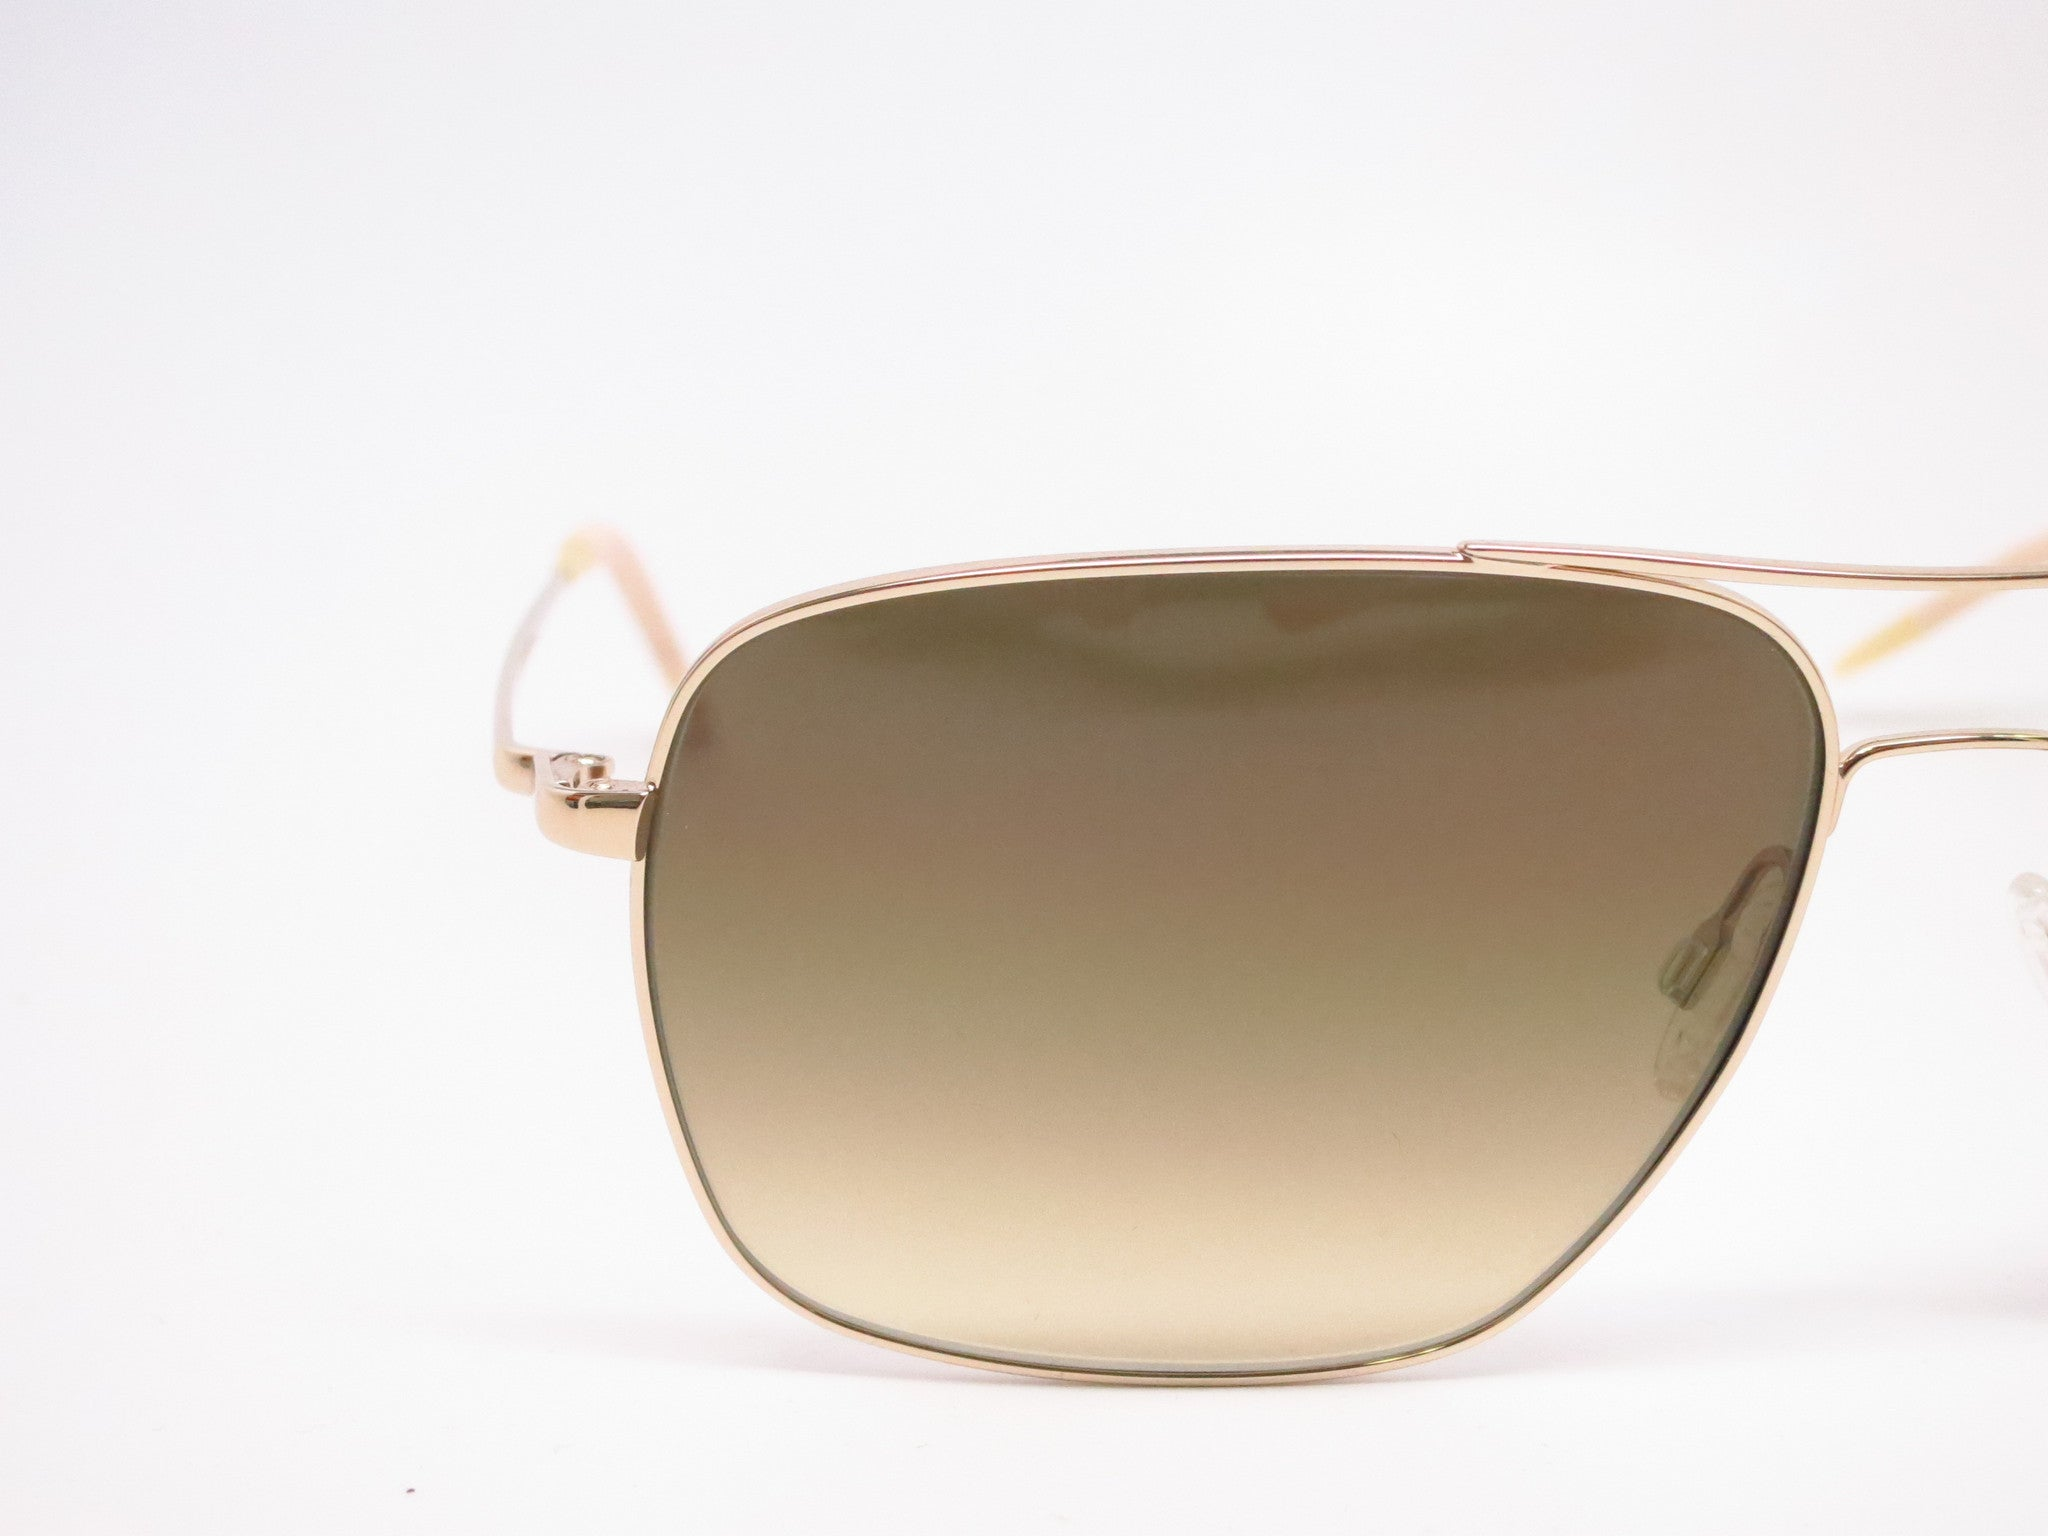 Ray Ban Eyeglasses Frame Replacement Parts : Shiny Havana Ray Ban Eyeglass Frames Replacement Parts ...